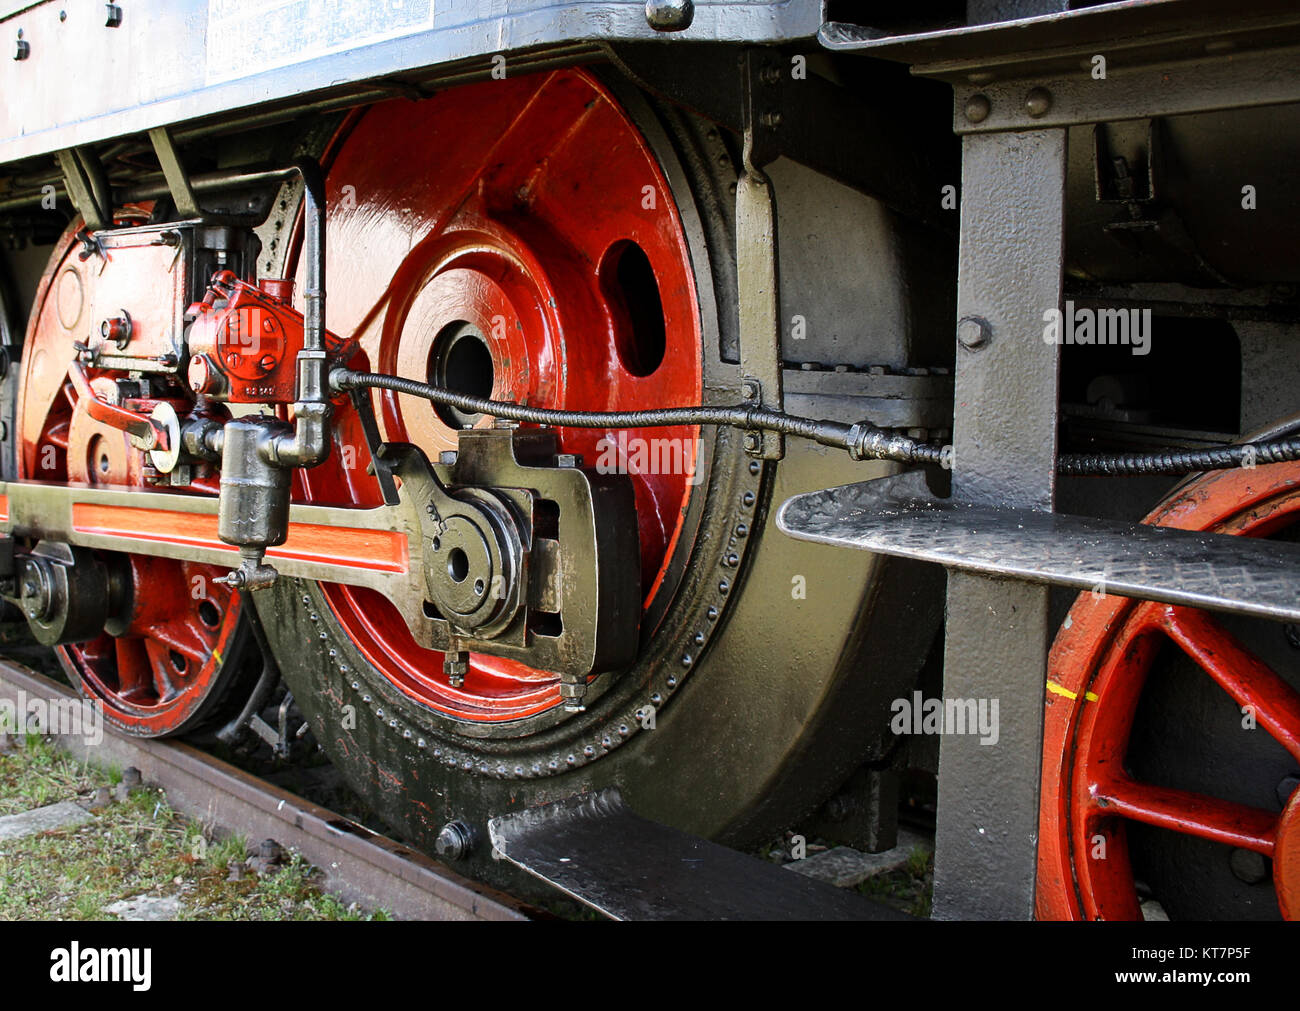 wheels of an old steam engine - Stock Image